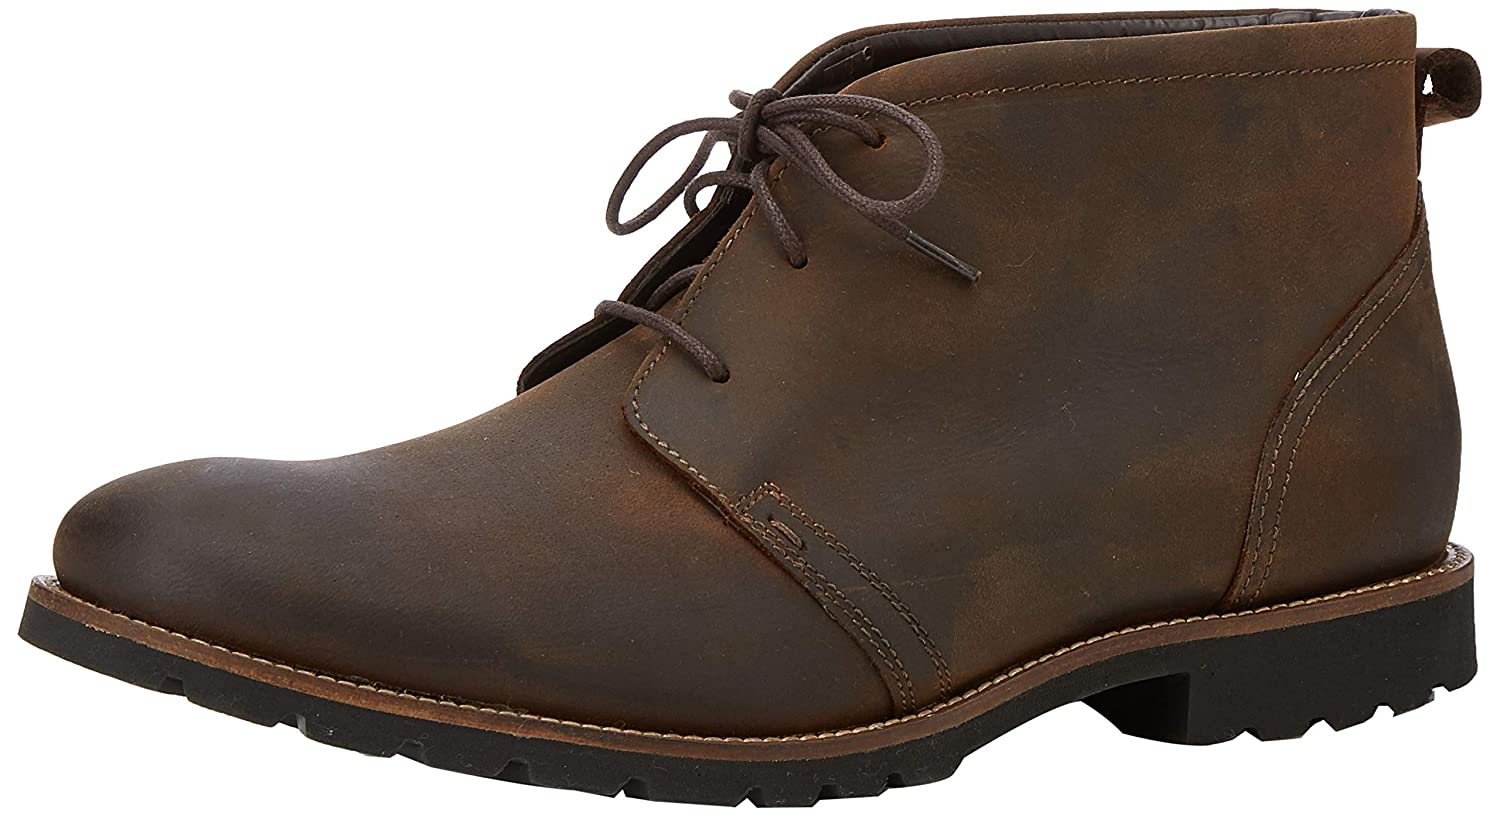 TALLA 47.5 EU. Rockport Modern Break Chukka Brown, Botas Hombre